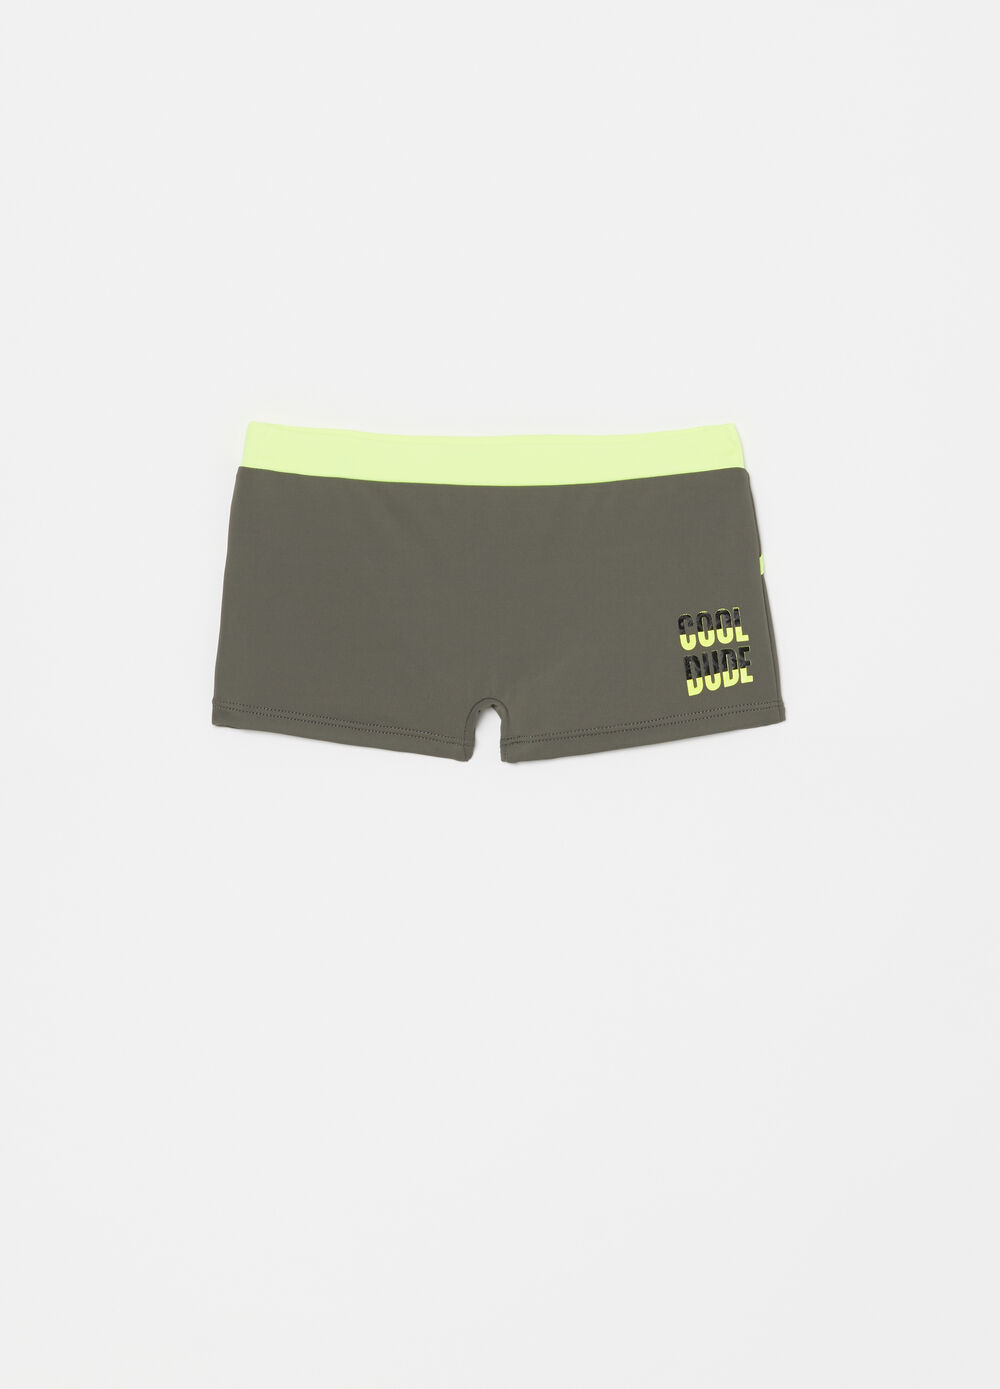 Two-tone stretch swimming trunks with print